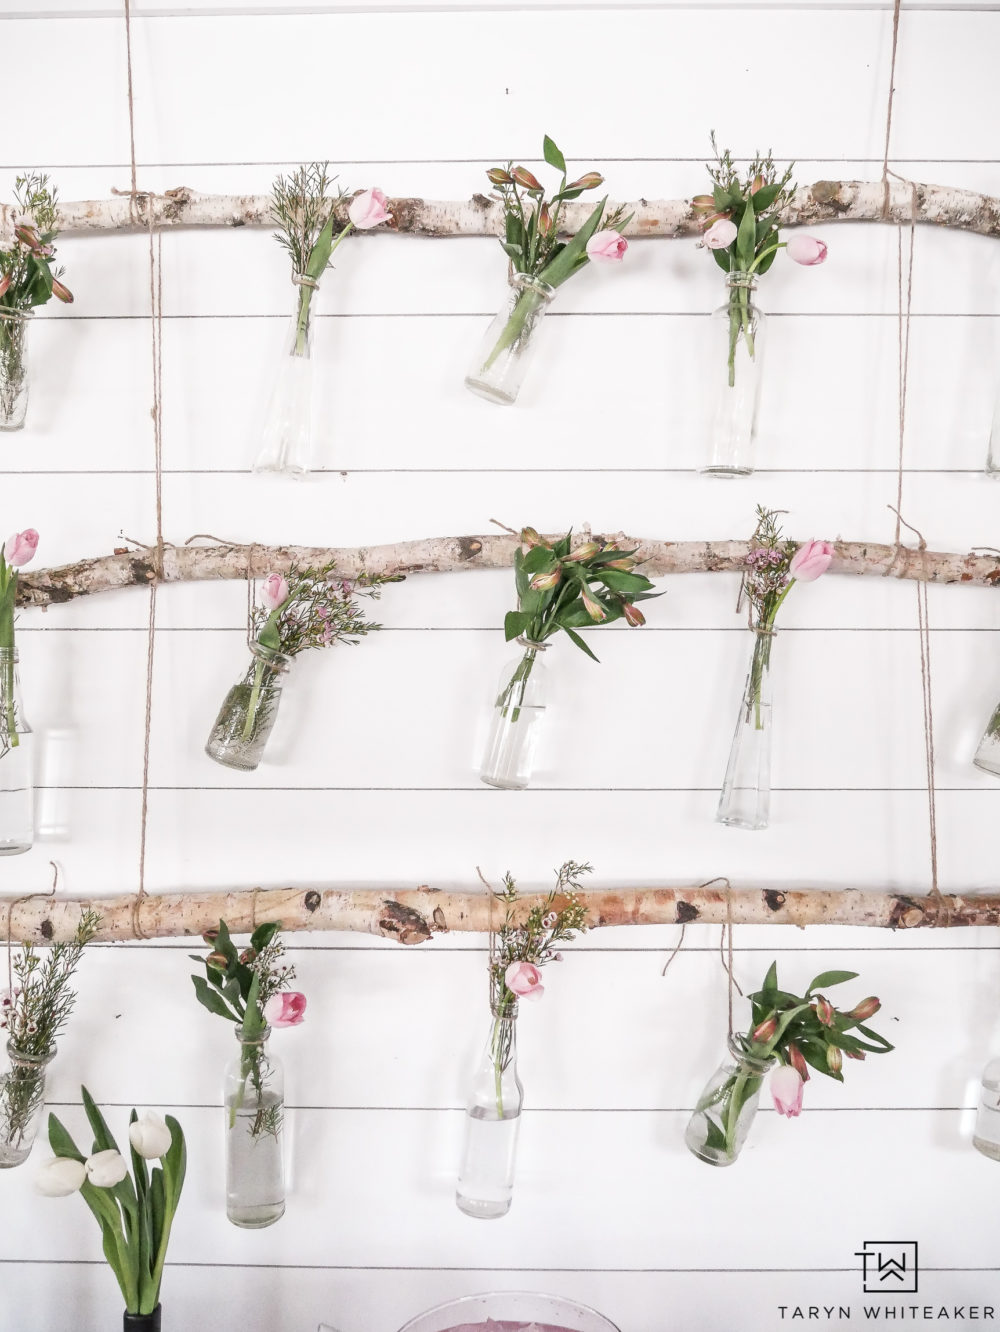 Create a DIY Hanging Flower Display for your next spring party!